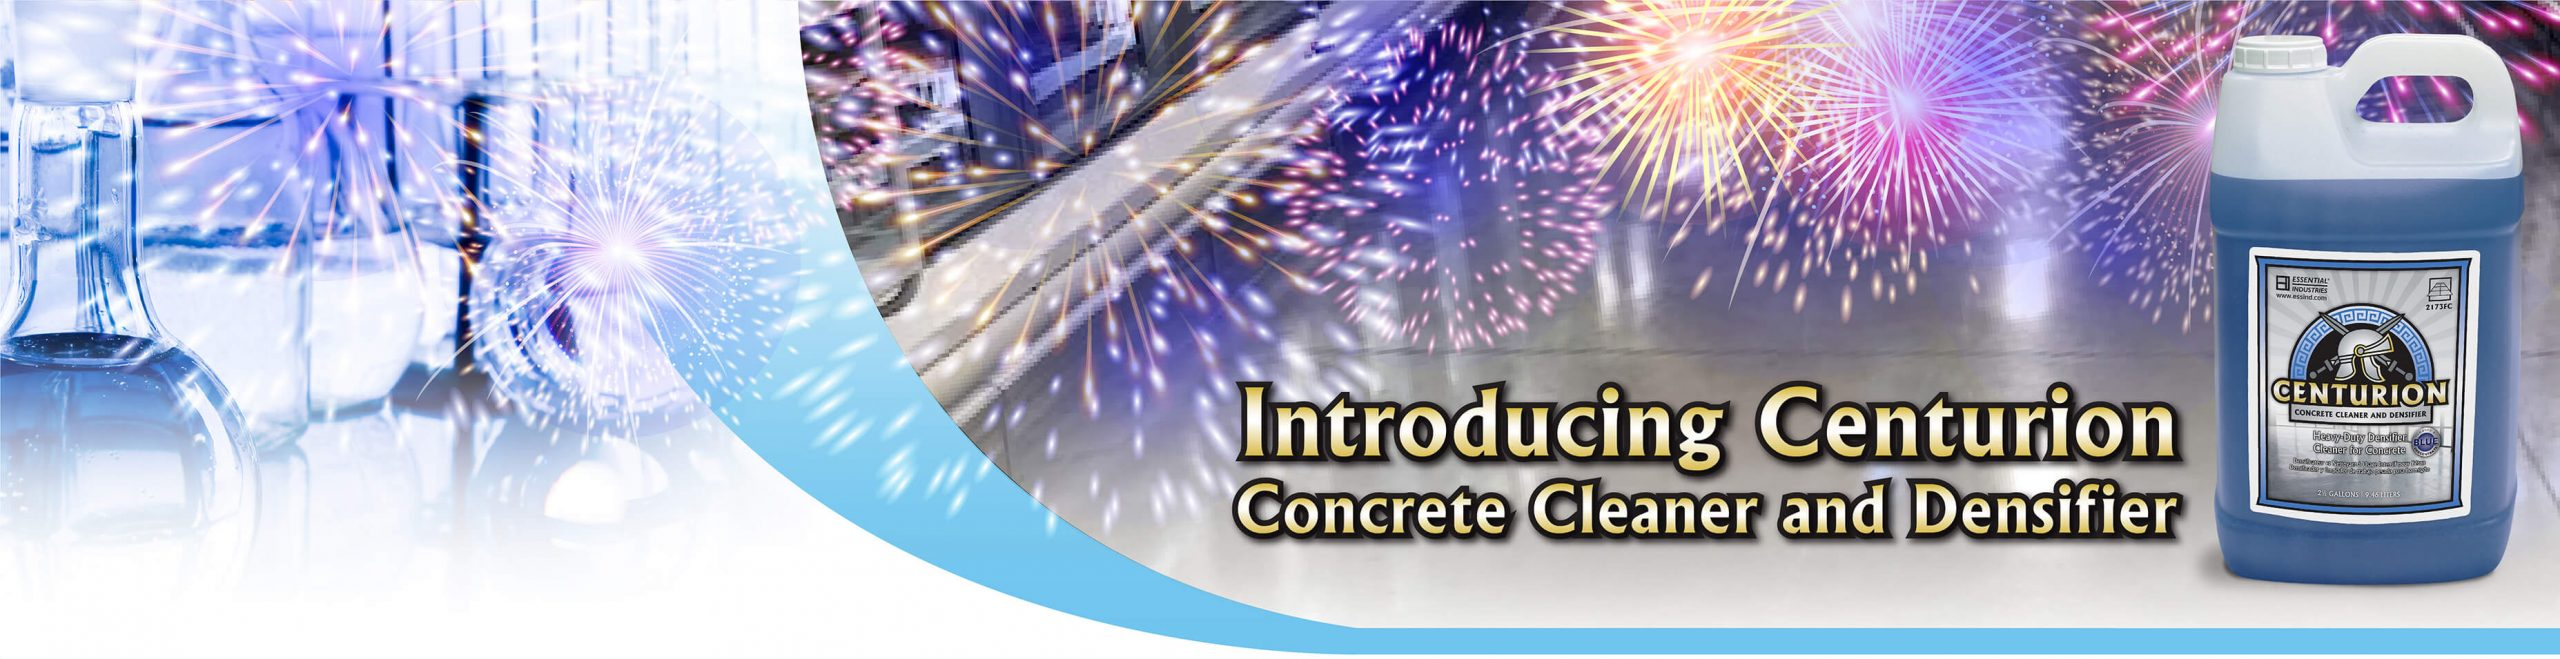 Introducing Centurion Concrete Cleaner and Densifier